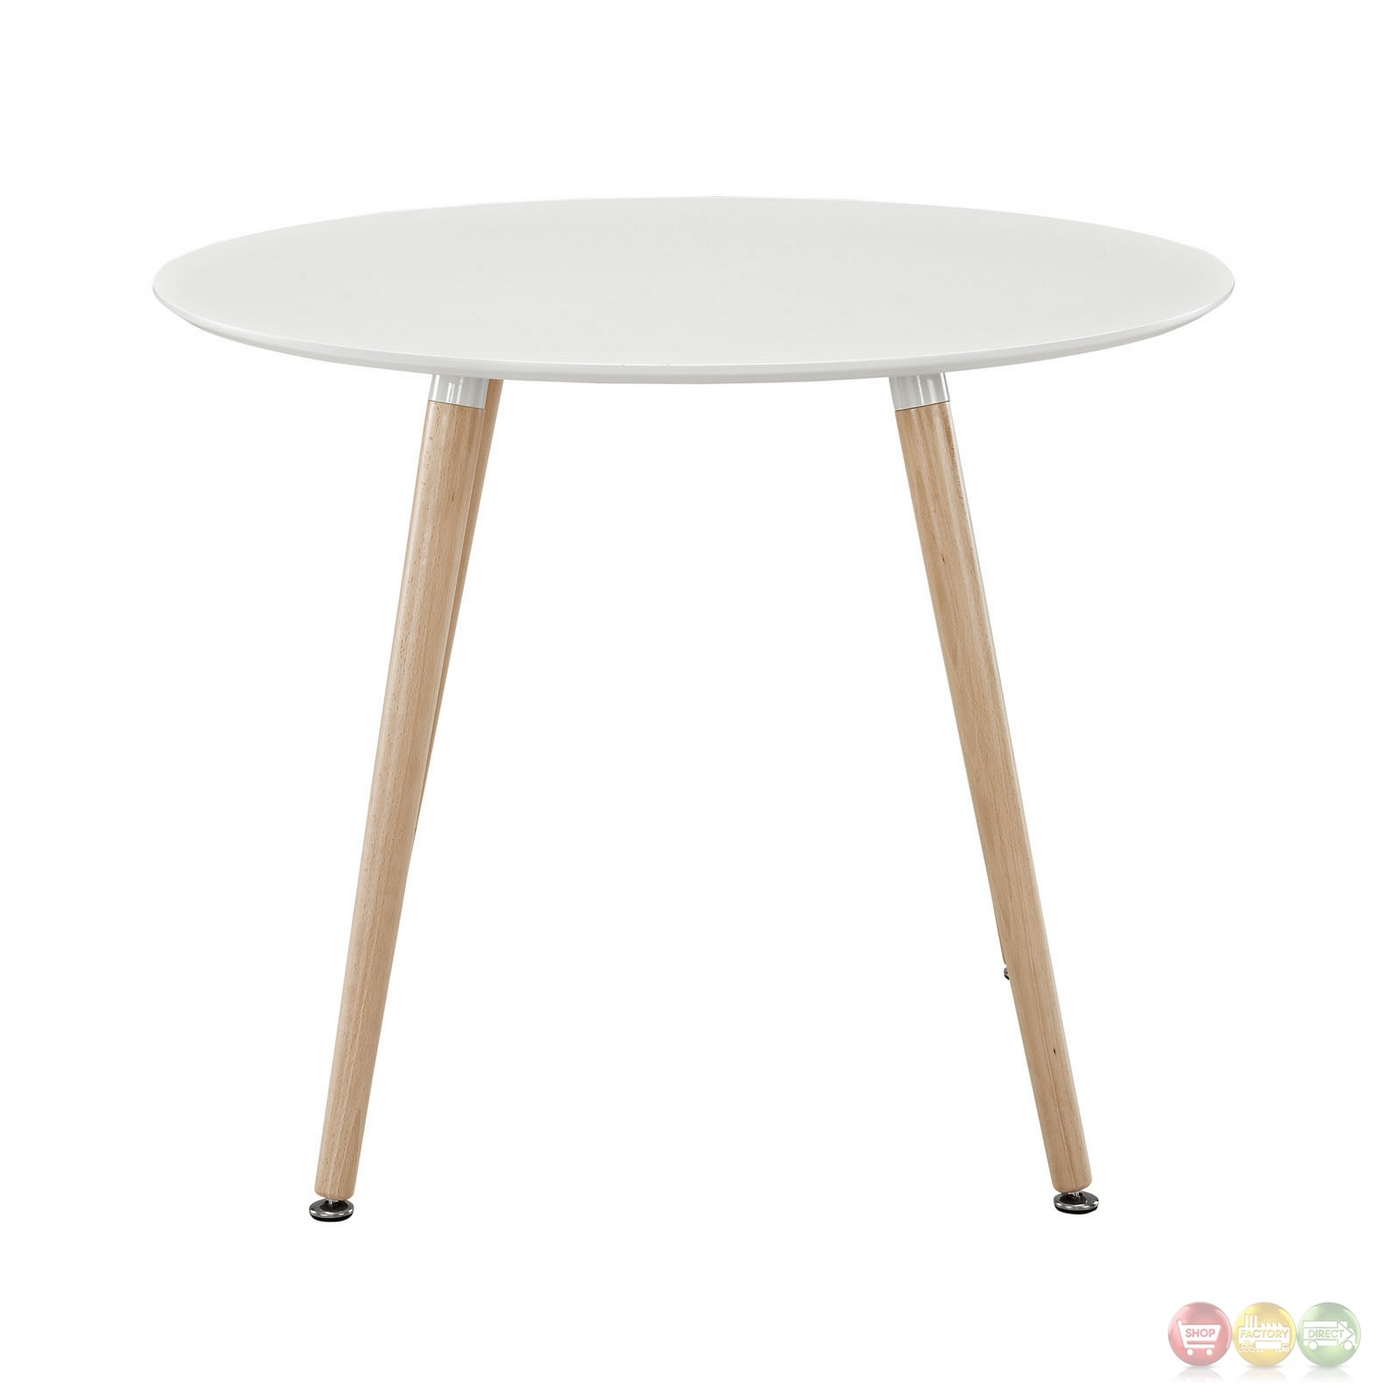 Track Contemporary 40 Round Wooden Dining Table White